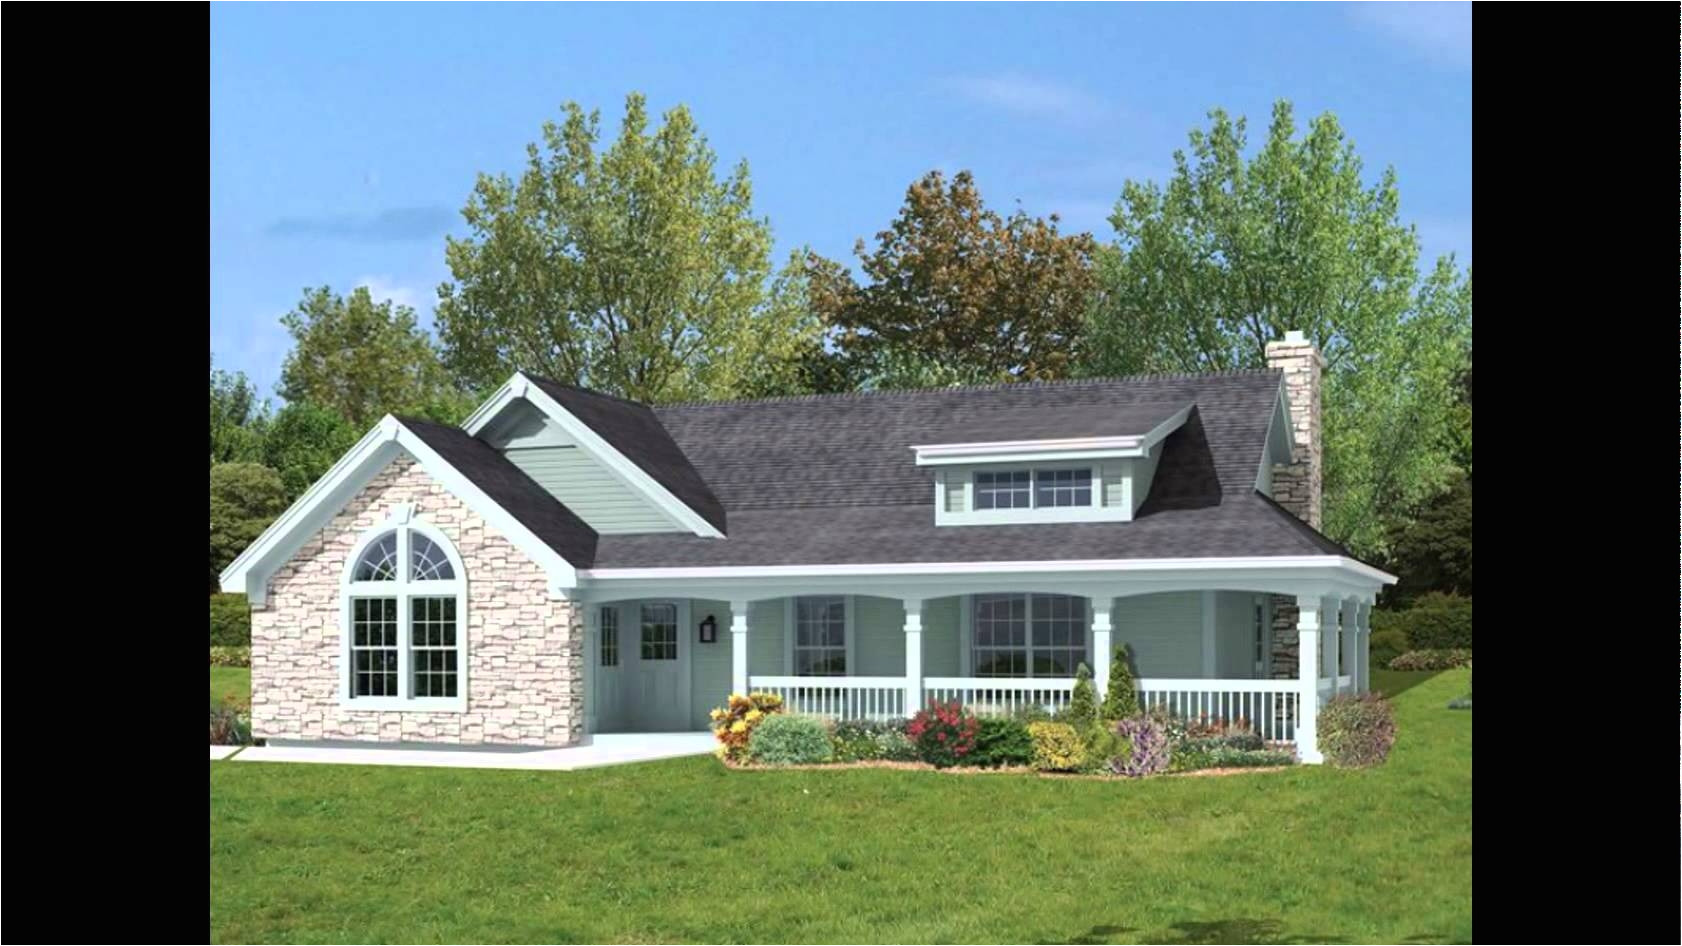 House Plans One Level with Wrap Around Porch One Level House Plans with Wrap Around Porch